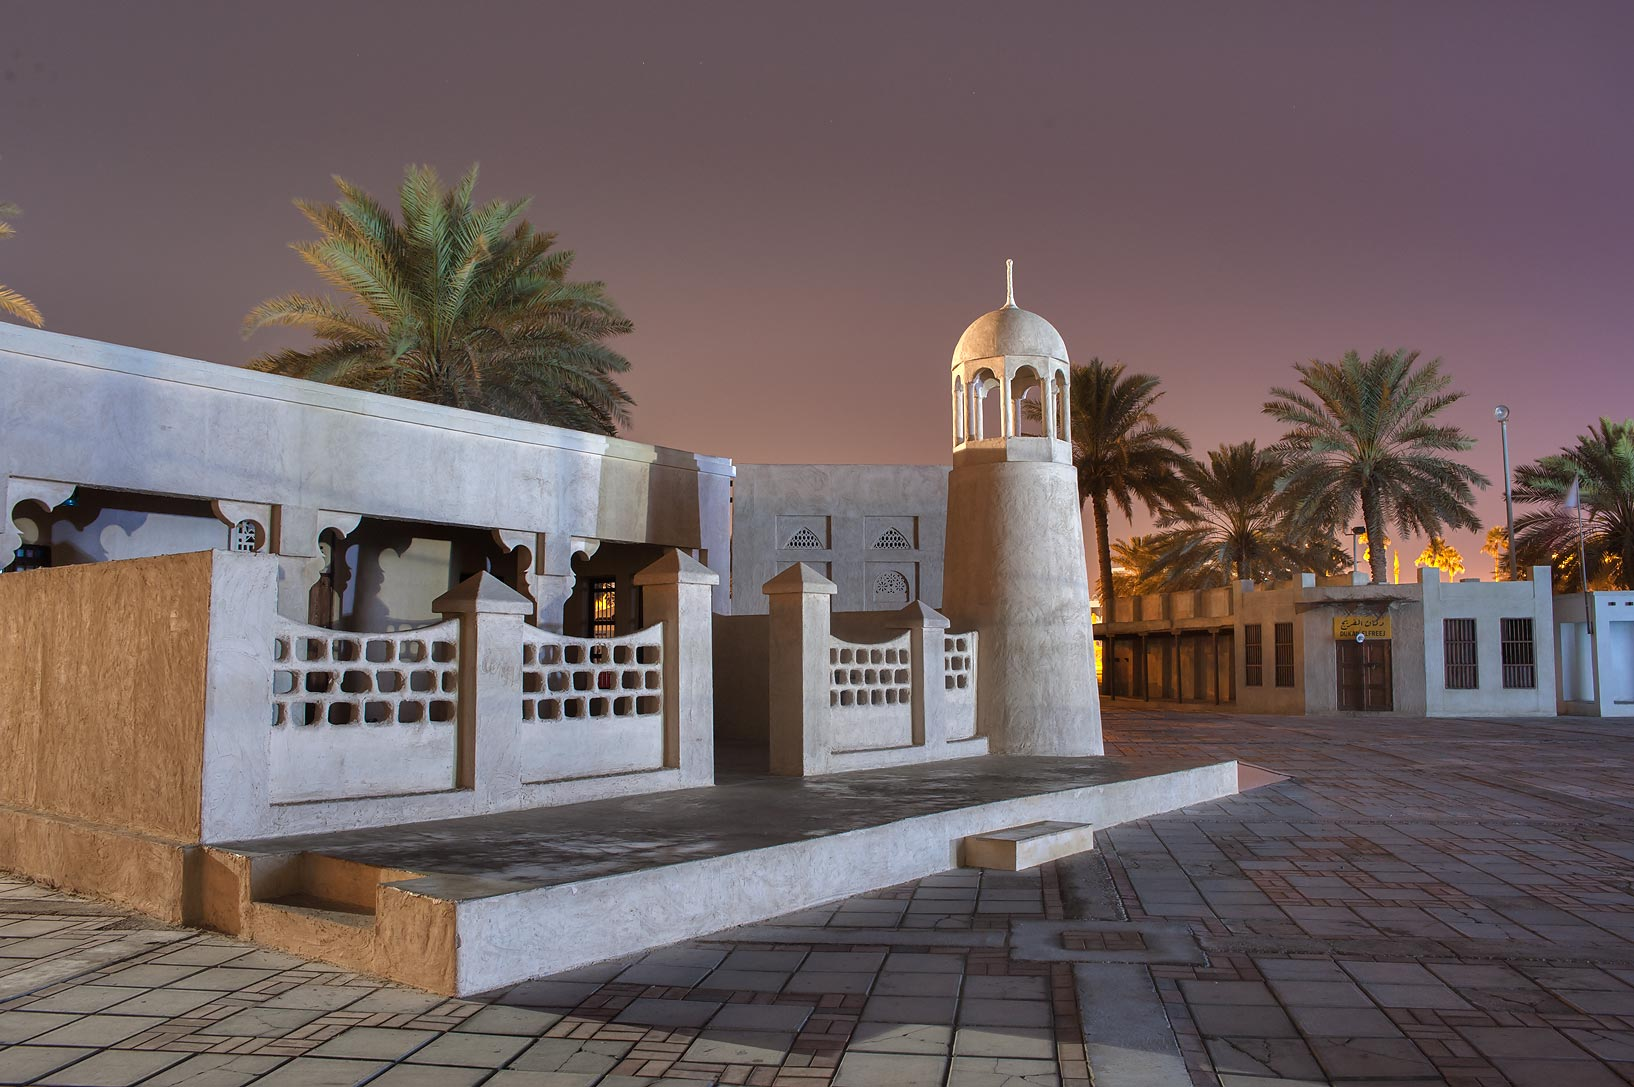 Reconstructed fake historical mosque near...on Corniche Promenade. Doha, Qatar